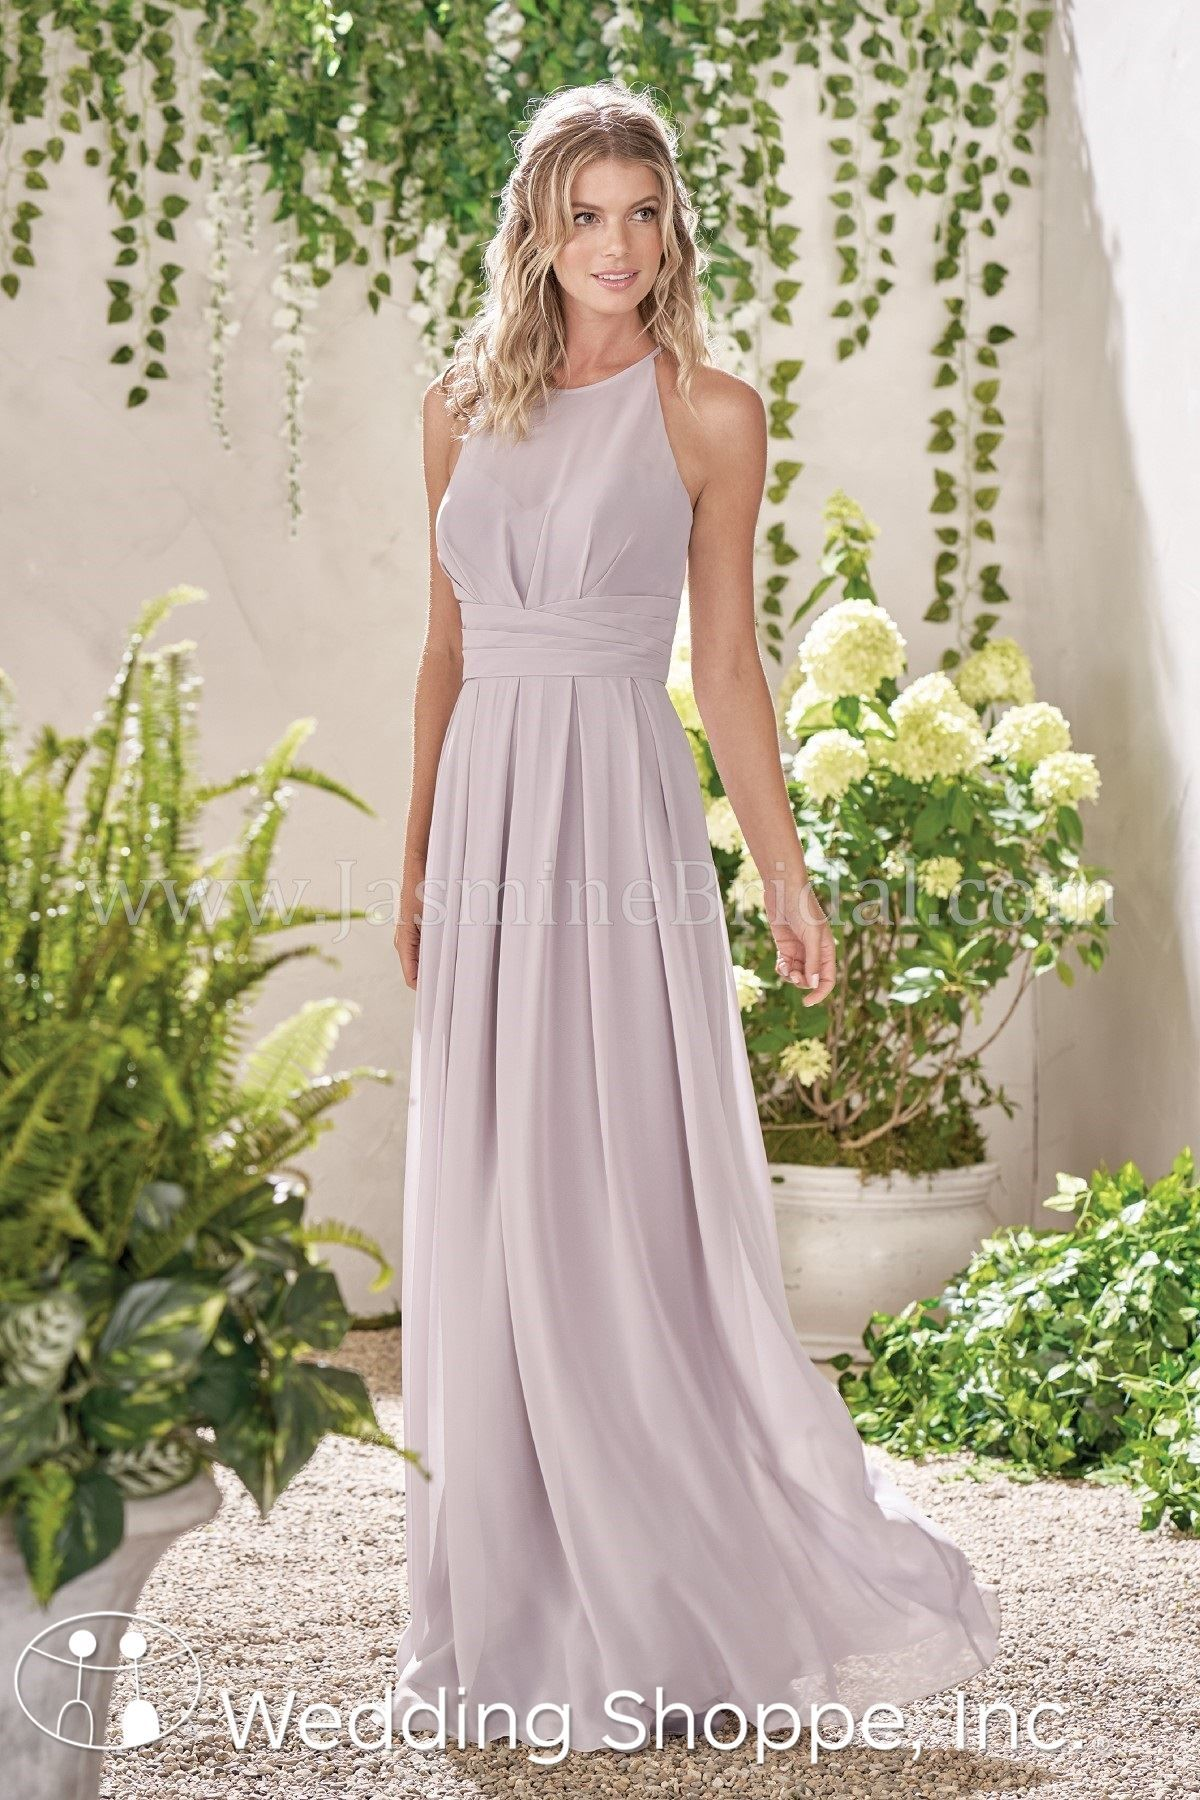 d688d5832a3 A romantic and vintage bohemian inspired bridesmaid dress with a high  neckline and high slit